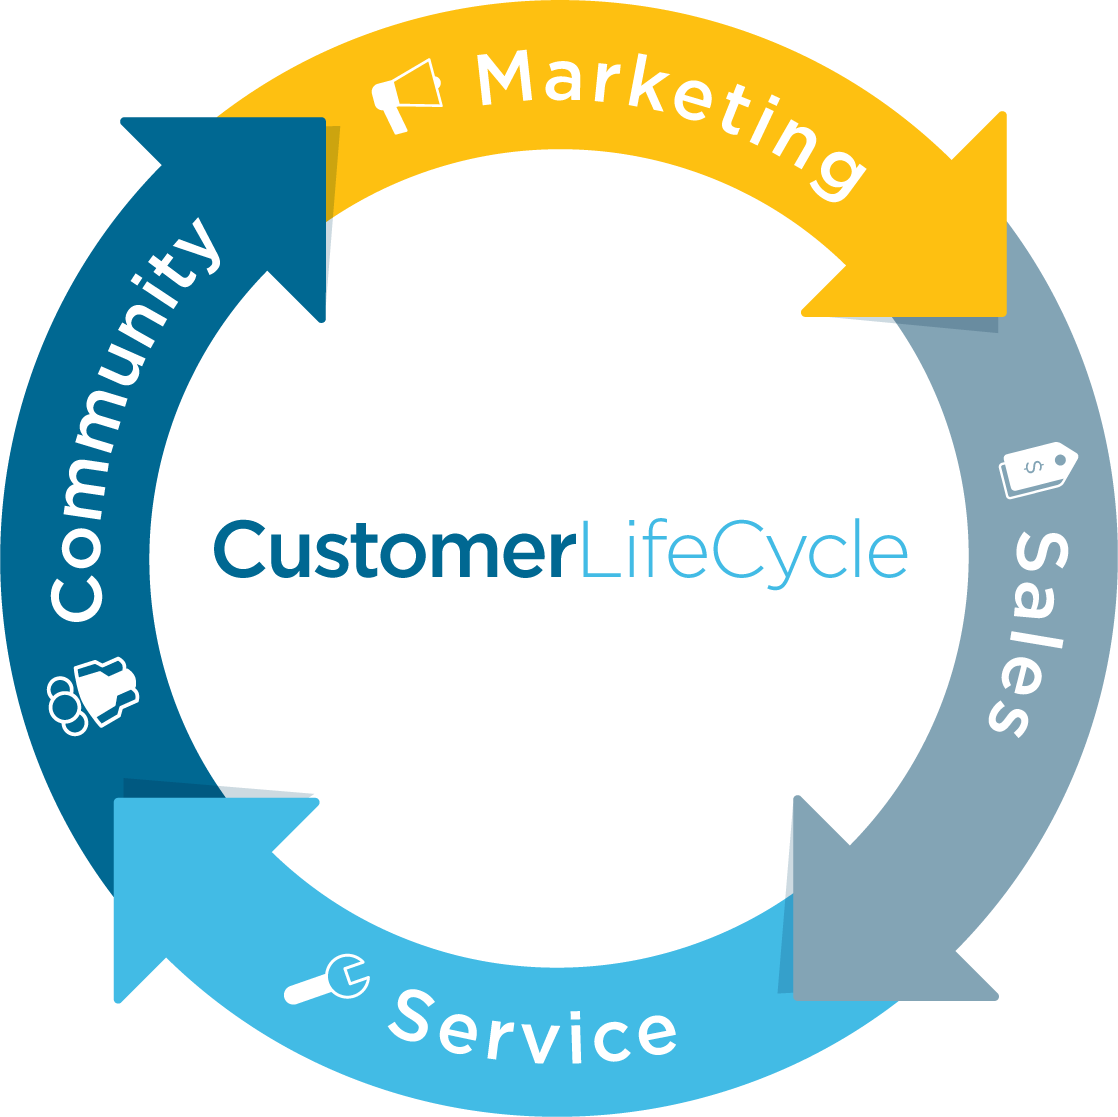 customer lifecycle torrent consulting